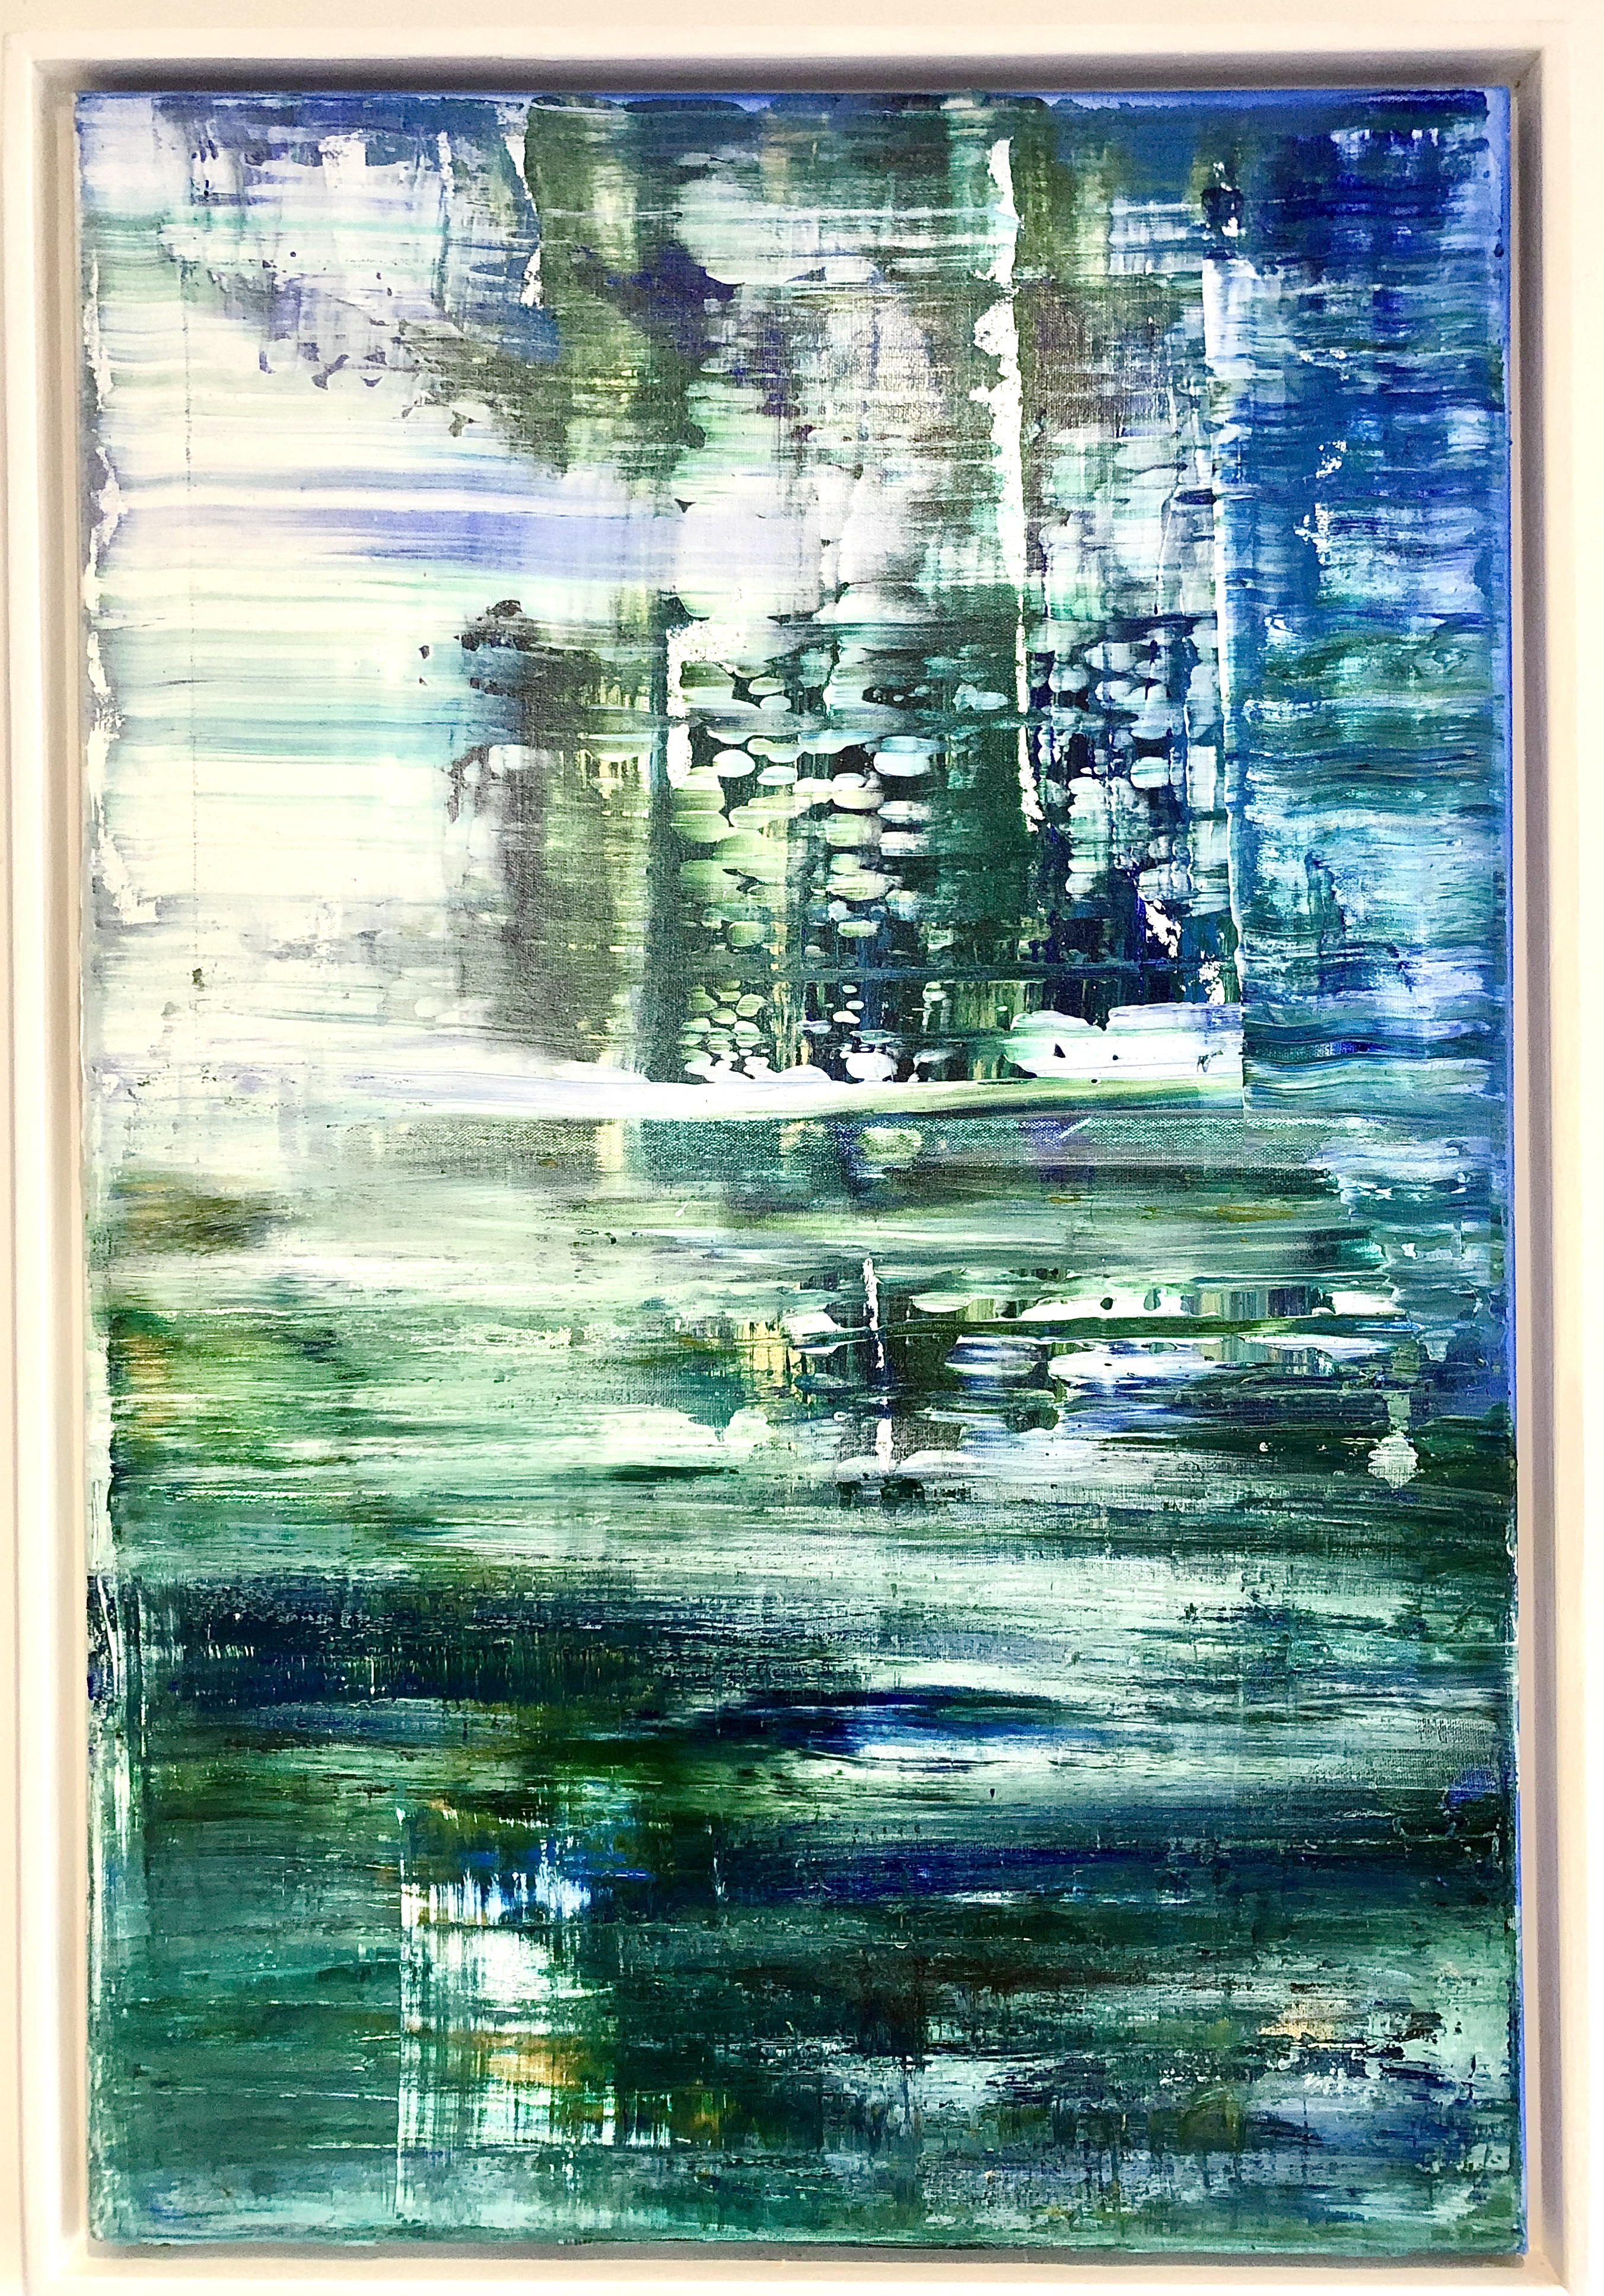 """Abstract blue and green light"". This is an original acrylic on canvas by Catherine Kennedy Width 51cm Height 76cm or 20ins x 30ins. Framed in a whitewashed wooden frame finished with beeswax. Signed. Comes with a certificate of authenticity. #artistsupportpledg"